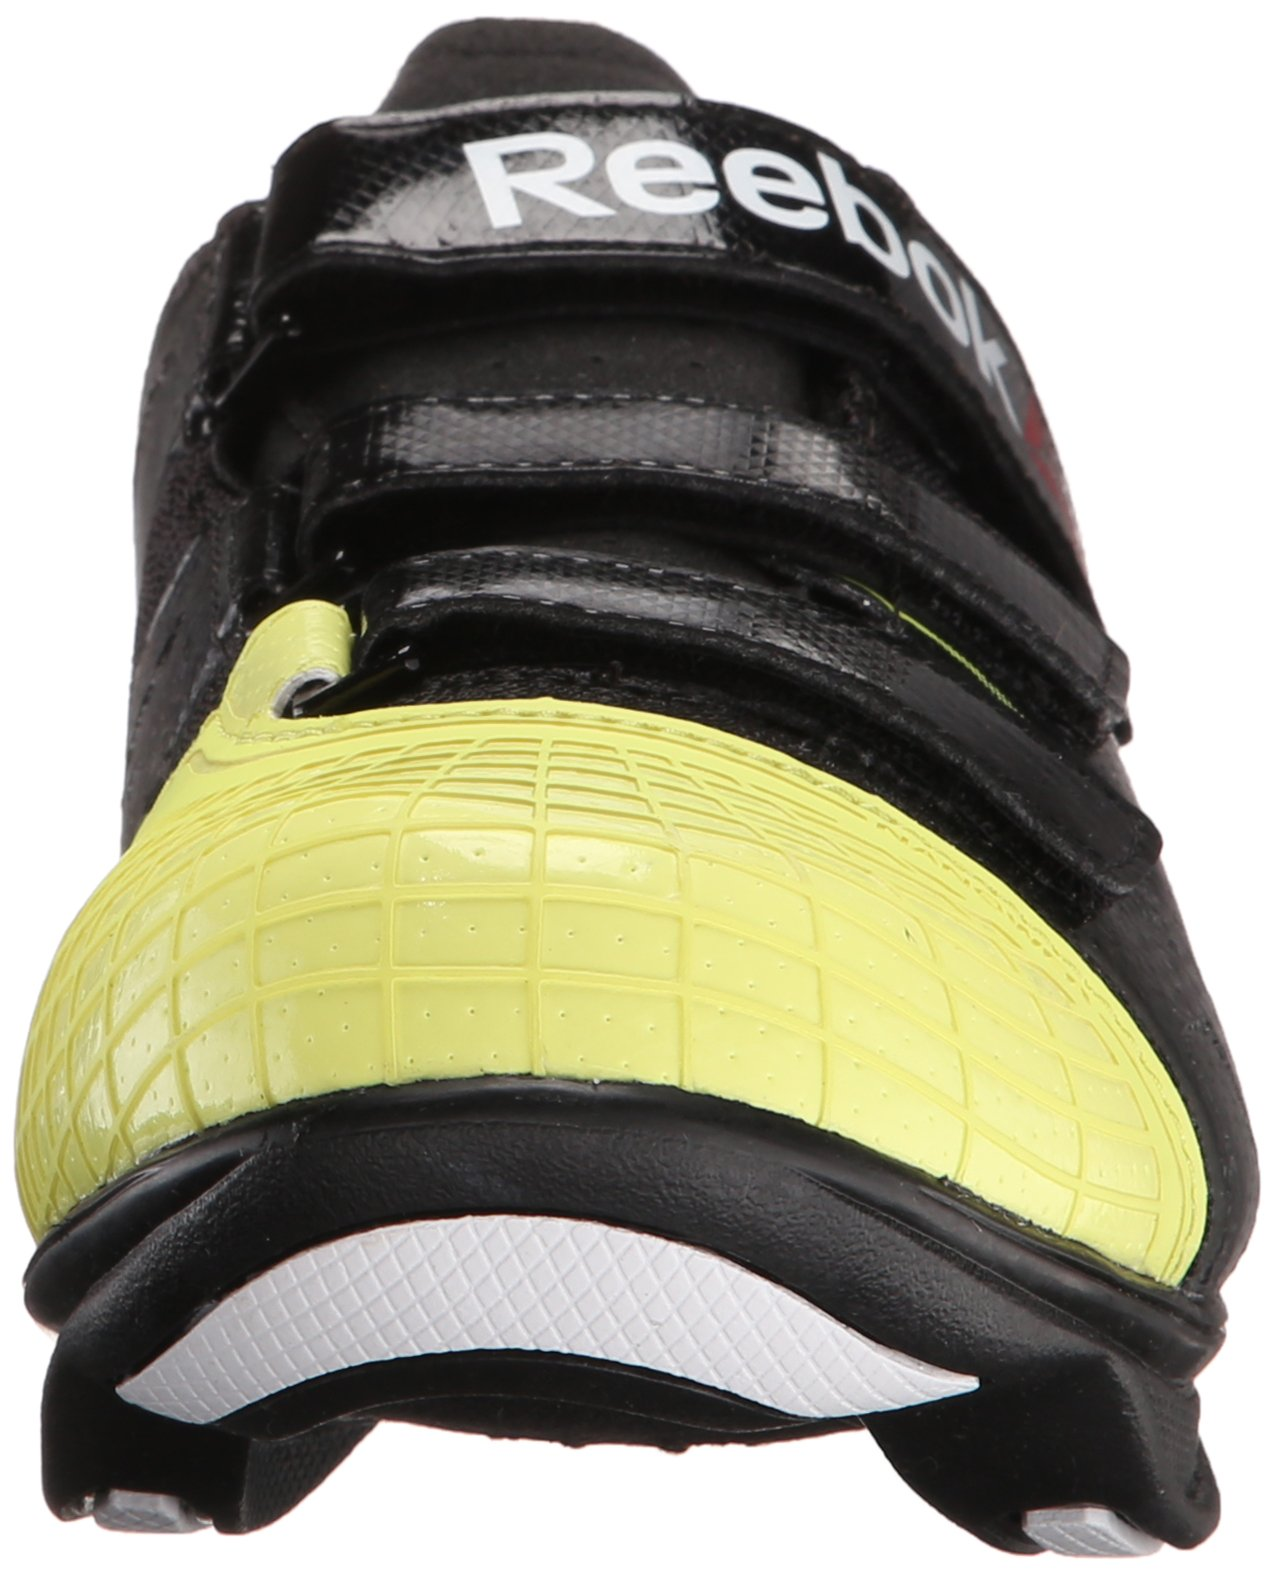 Reebok Men's Cycle Attack U Cycling Shoe Buy Online in UAE